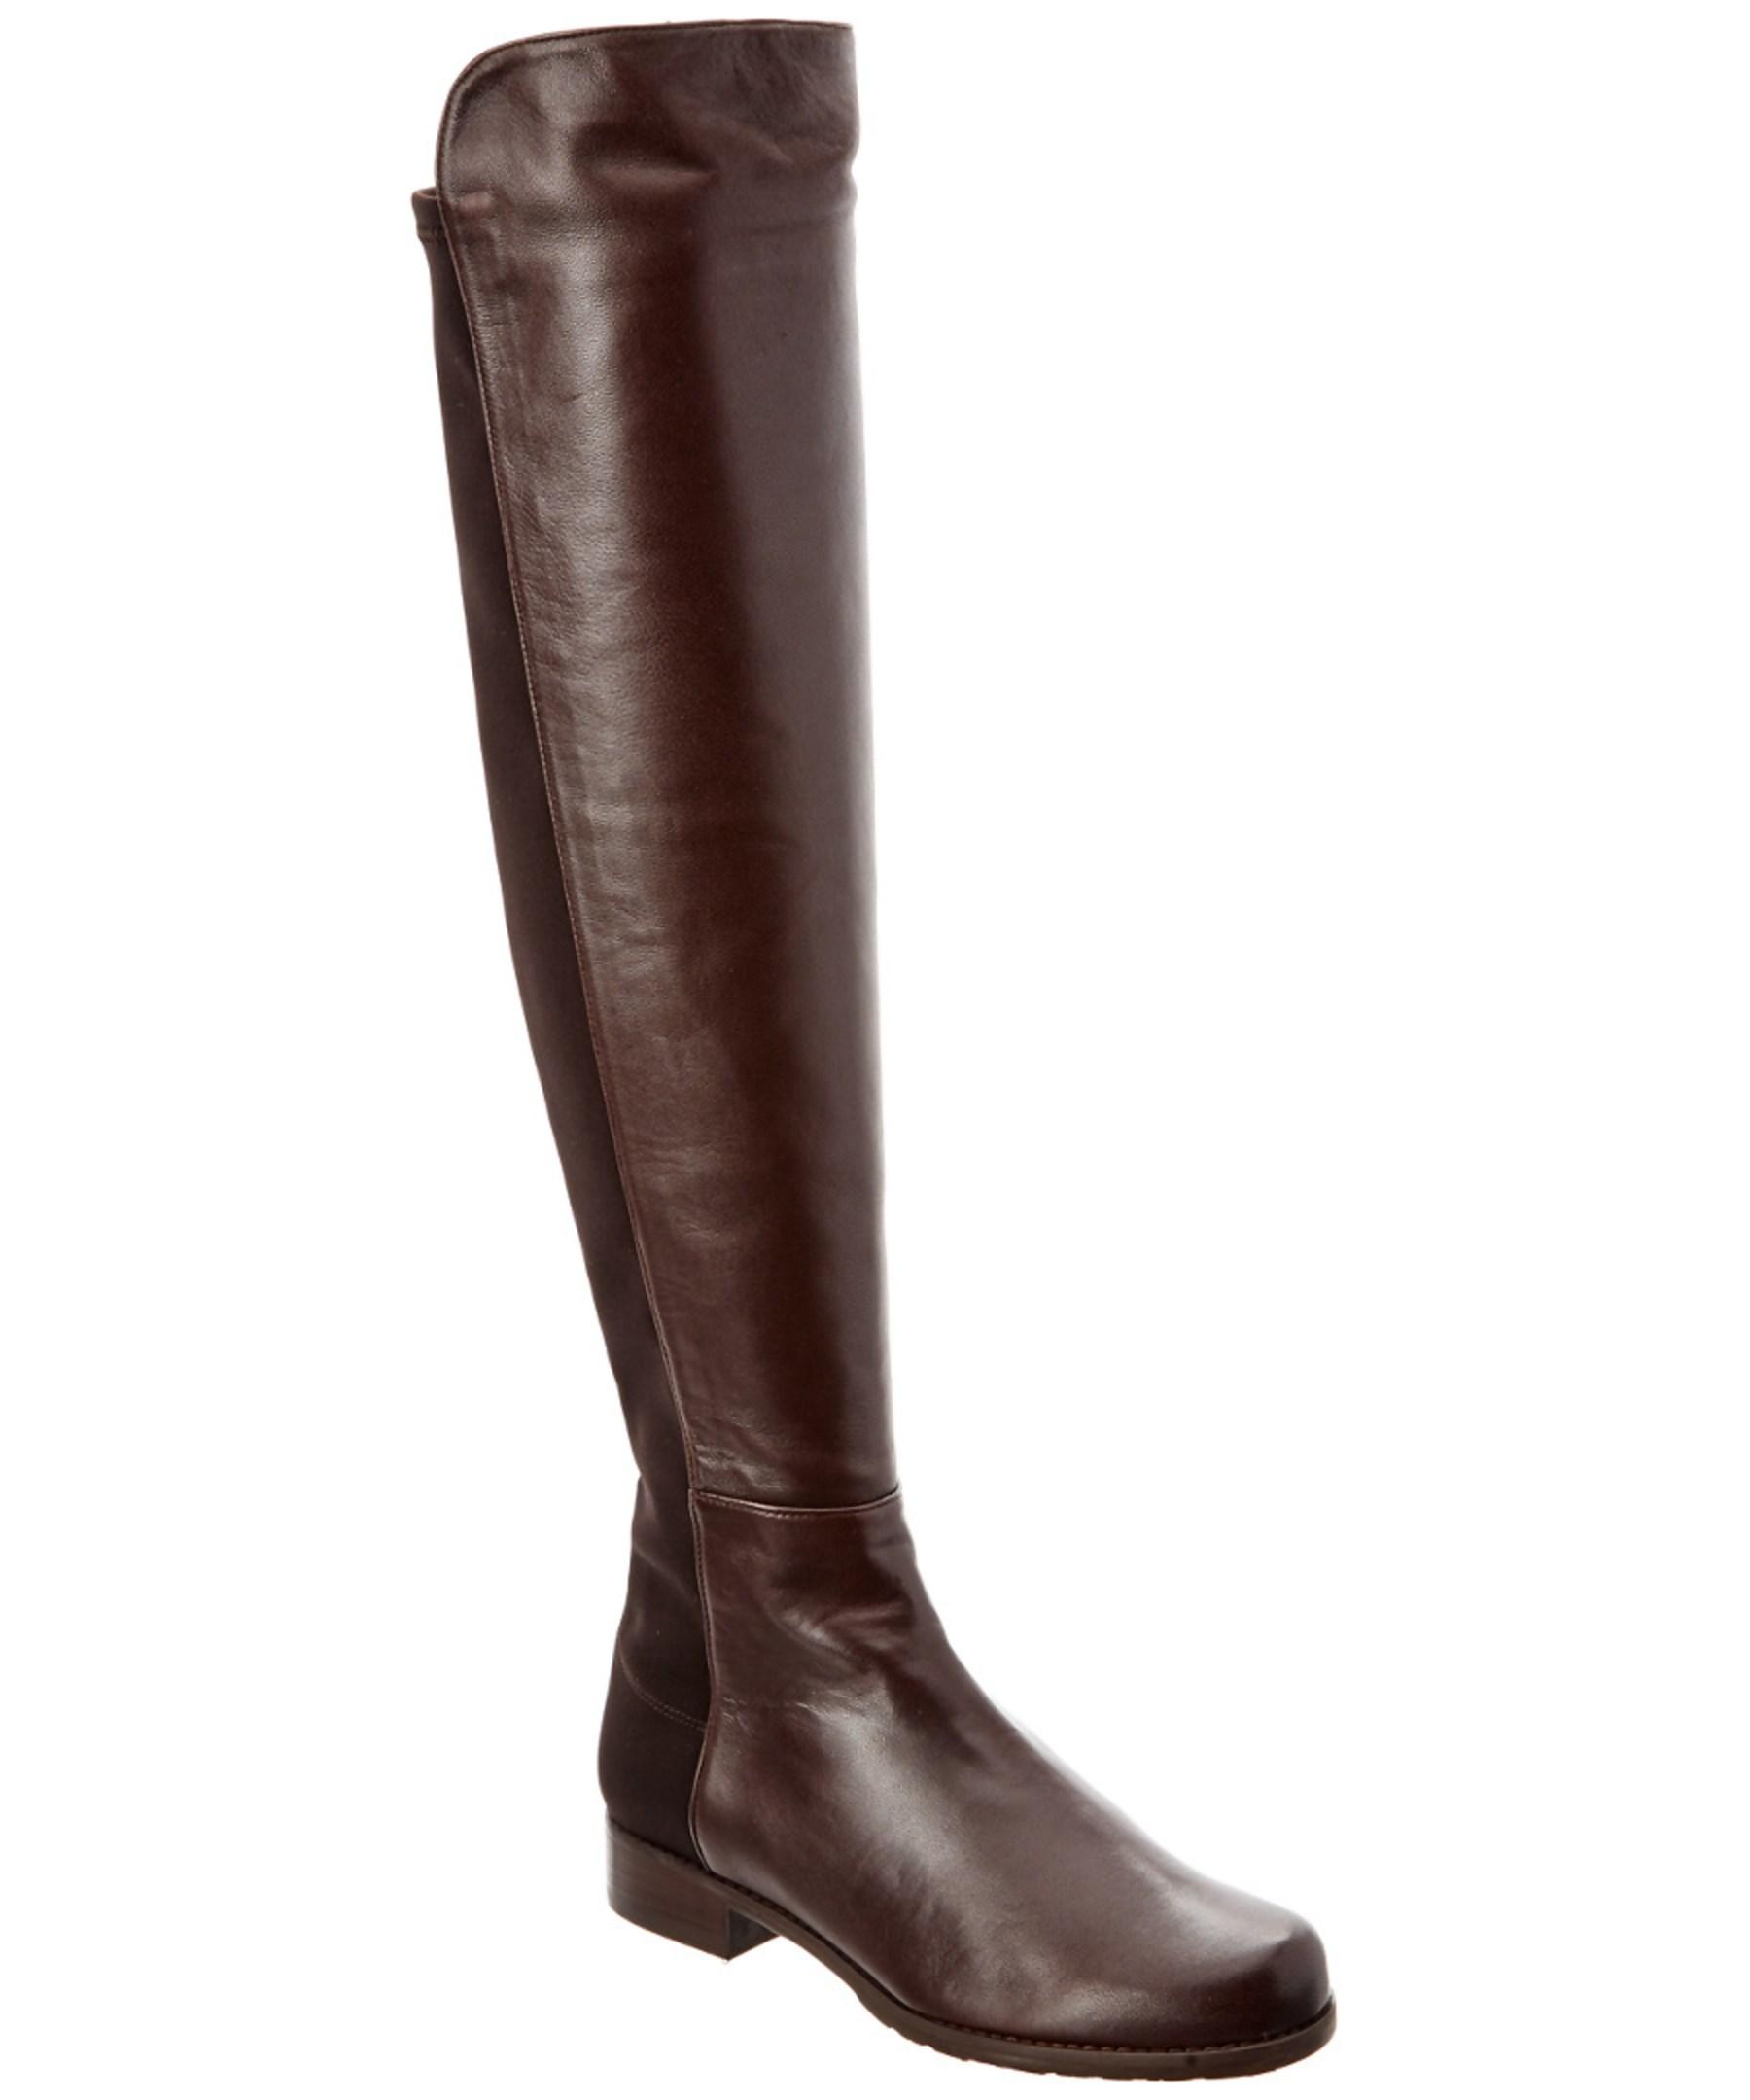 stuart weitzman 5050 leather boot in brown lyst